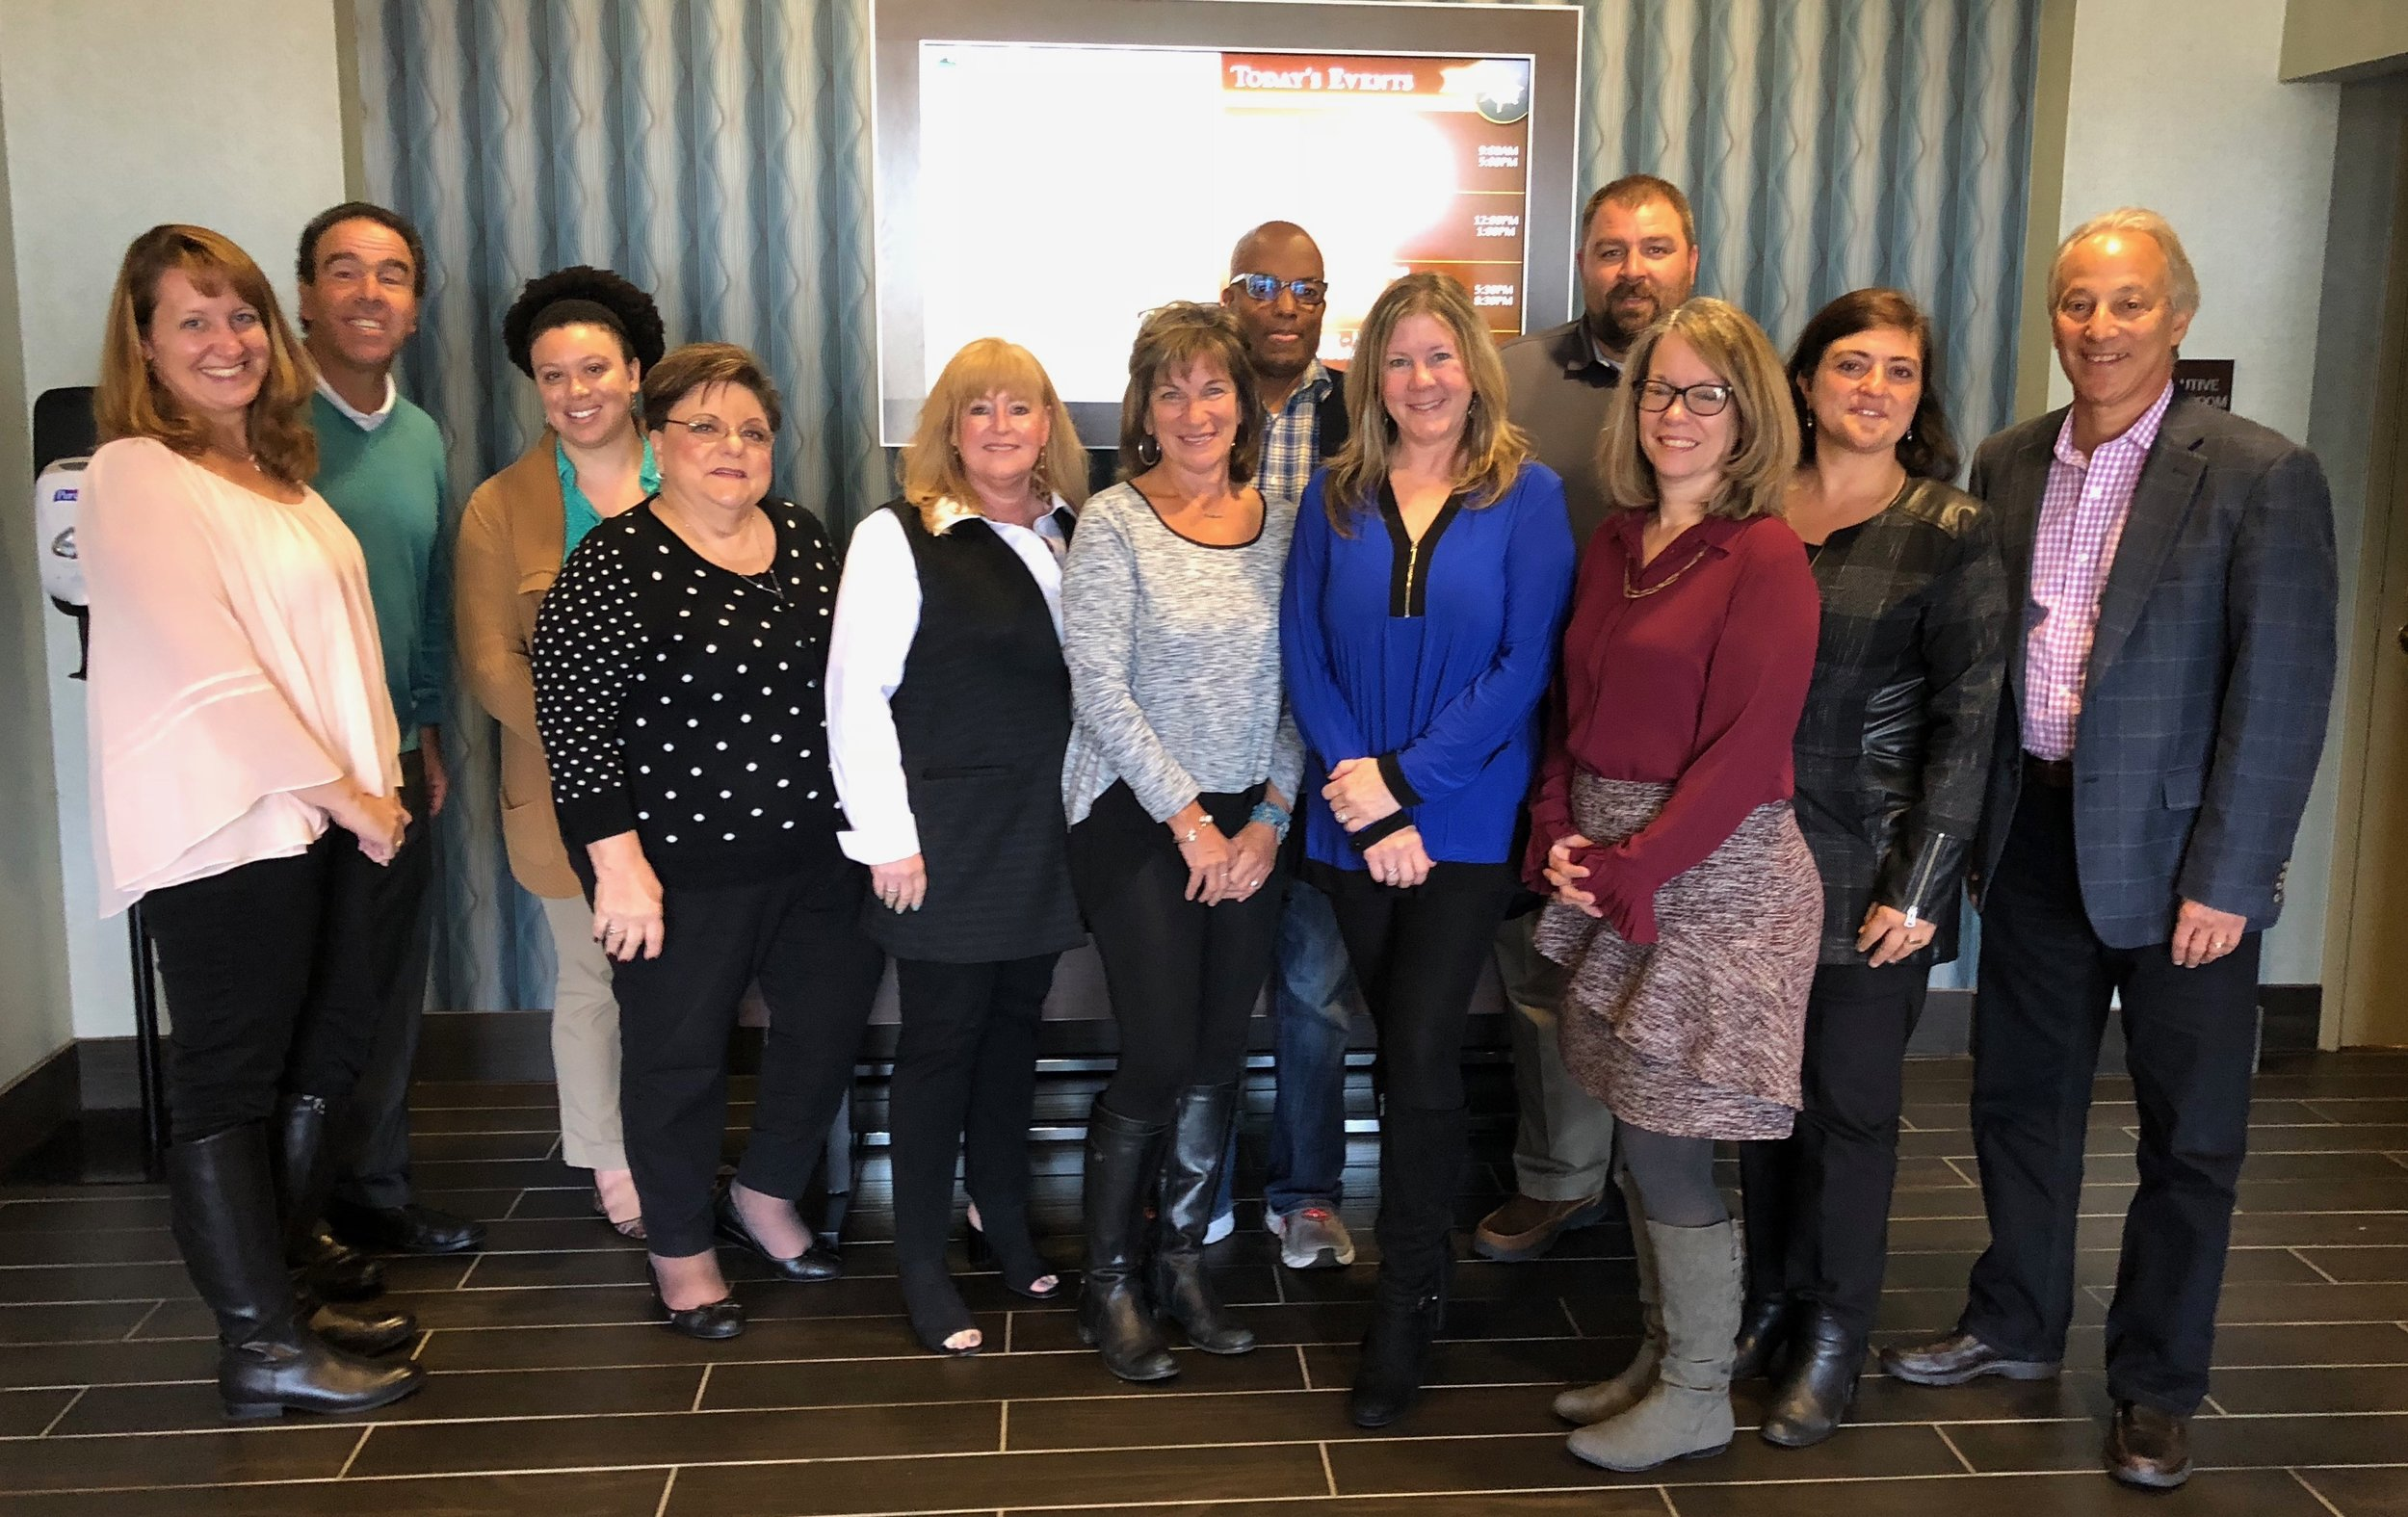 October 2018 Retreat  Pictured: Vera Simmons, Pete Mangione, MySha Allen, Tina Broccolino, Beth Ditman, Susie Davis, Rocky Brown, Michelle Wildman, Wayne Johnson, Christie Lassen, Anita Broccolino, Joe Barbera.